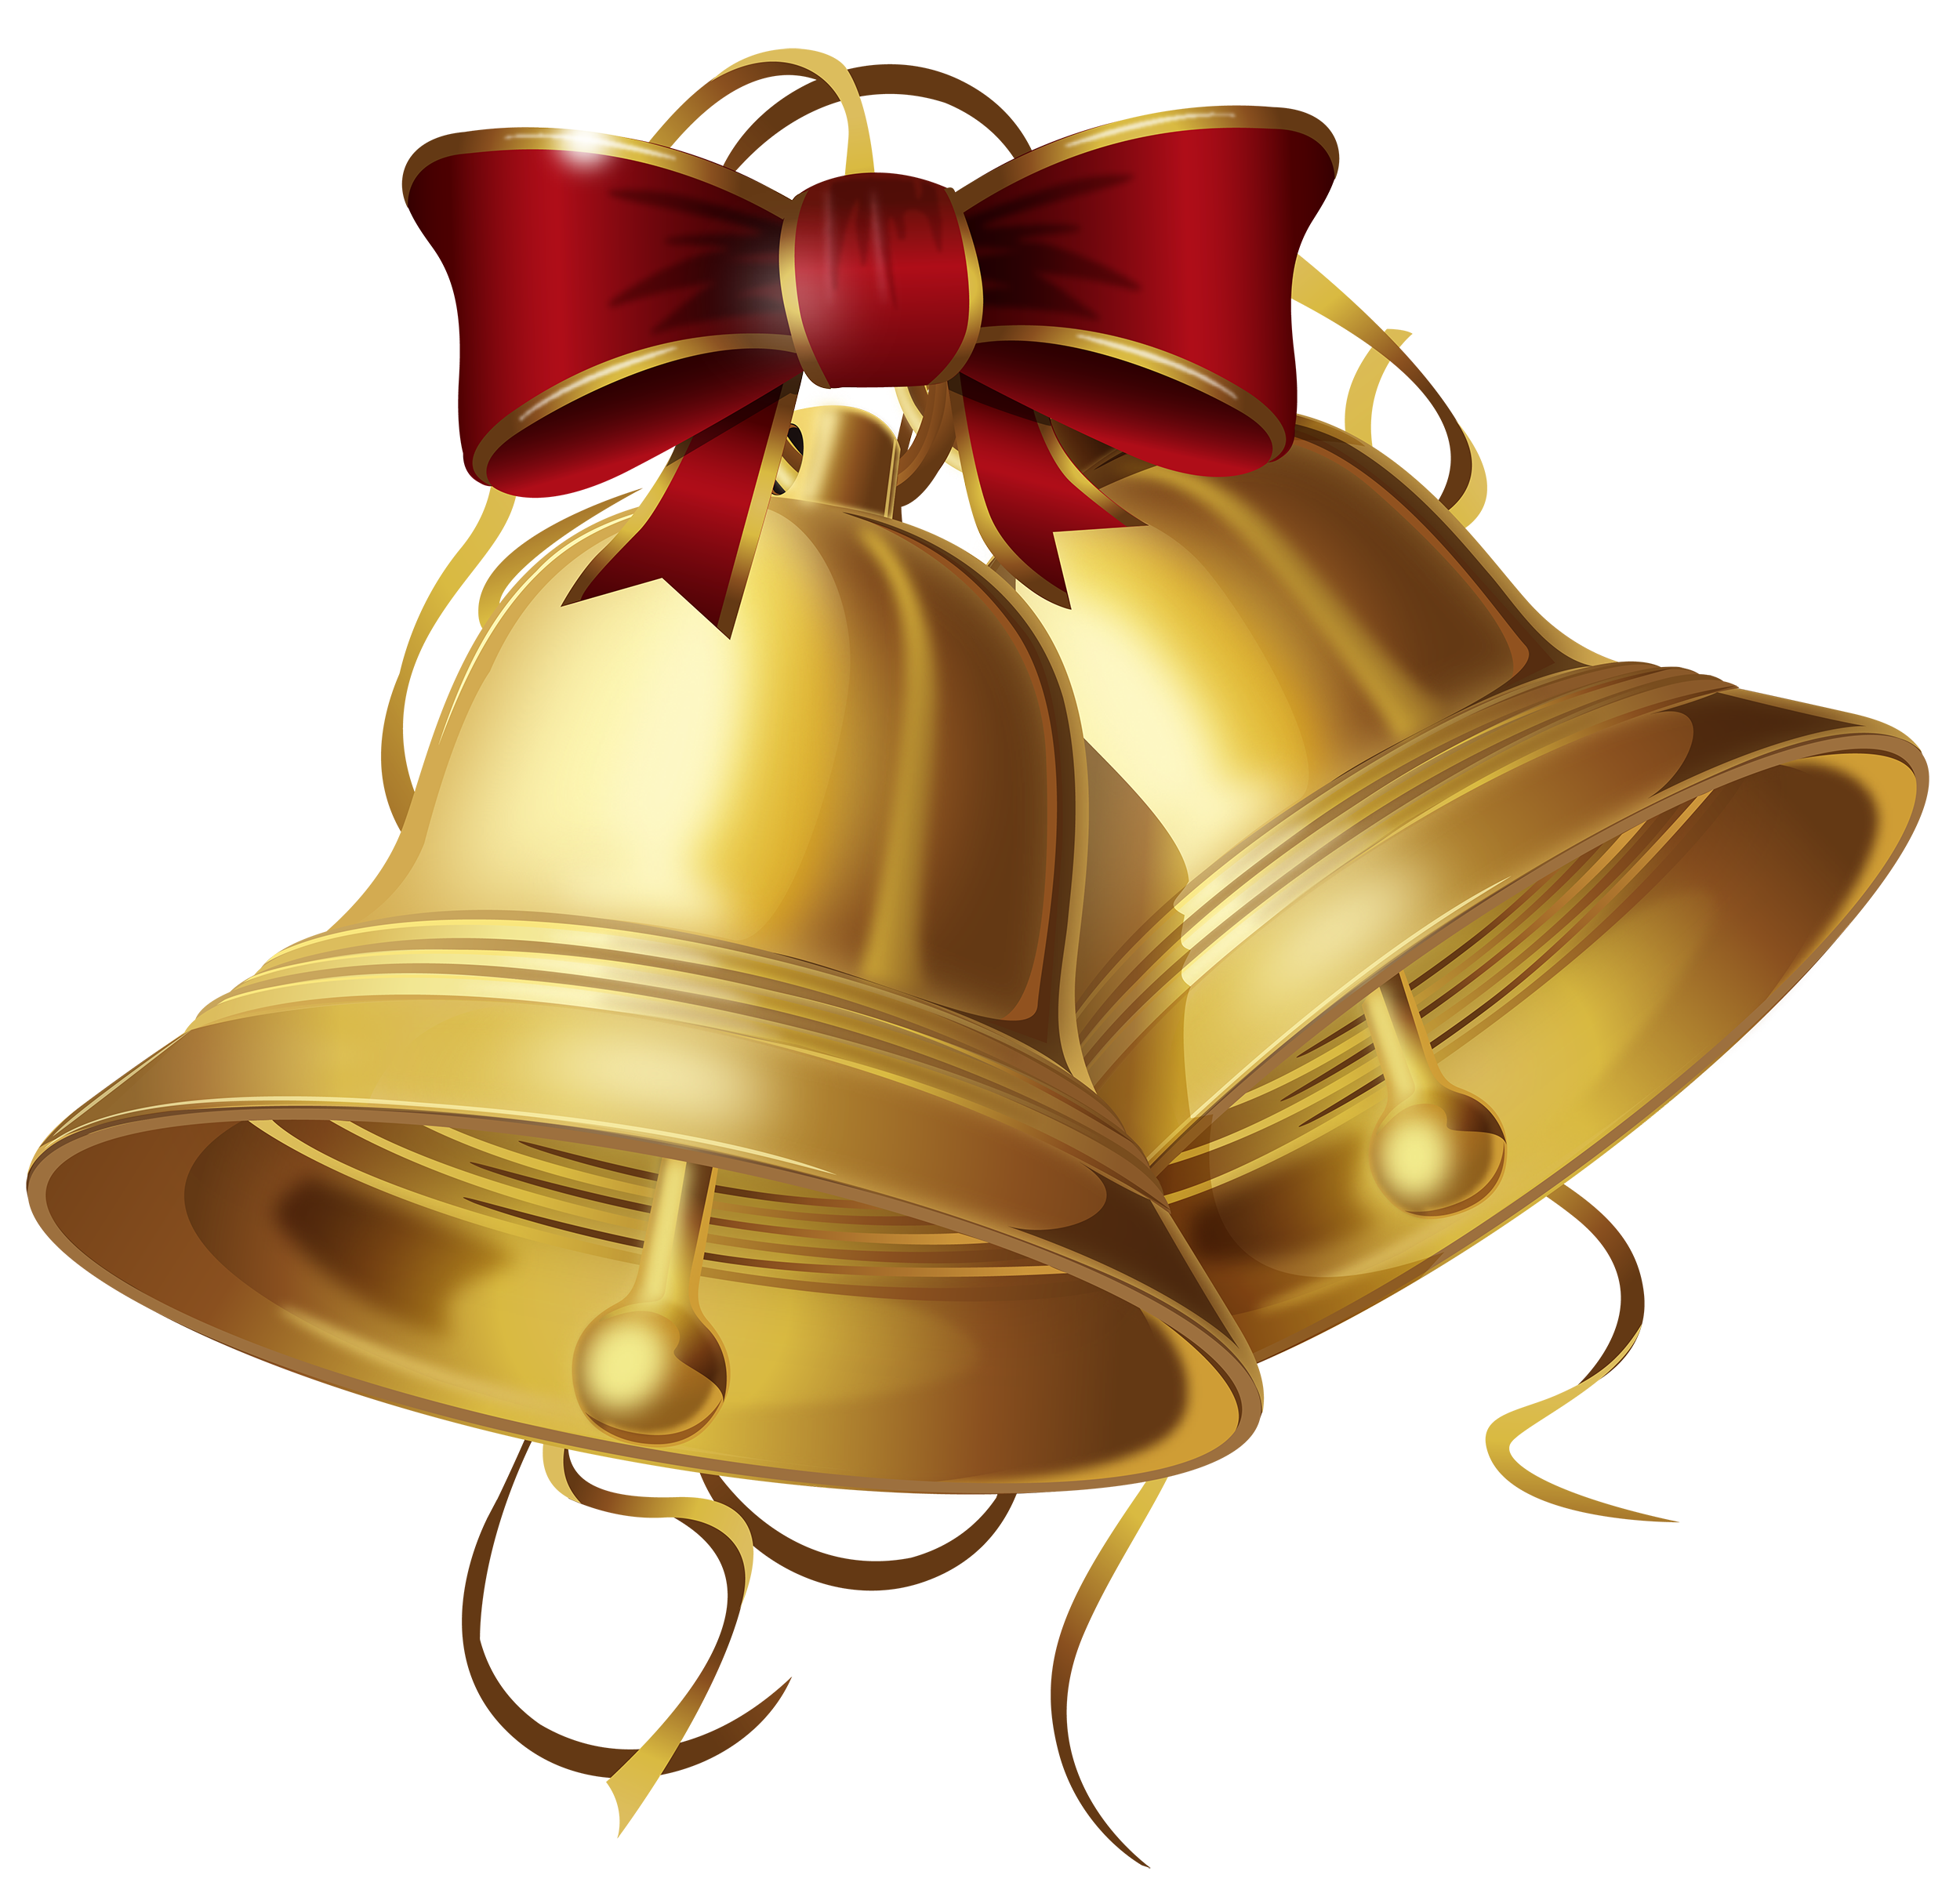 Bells clipart. Christmas png best web